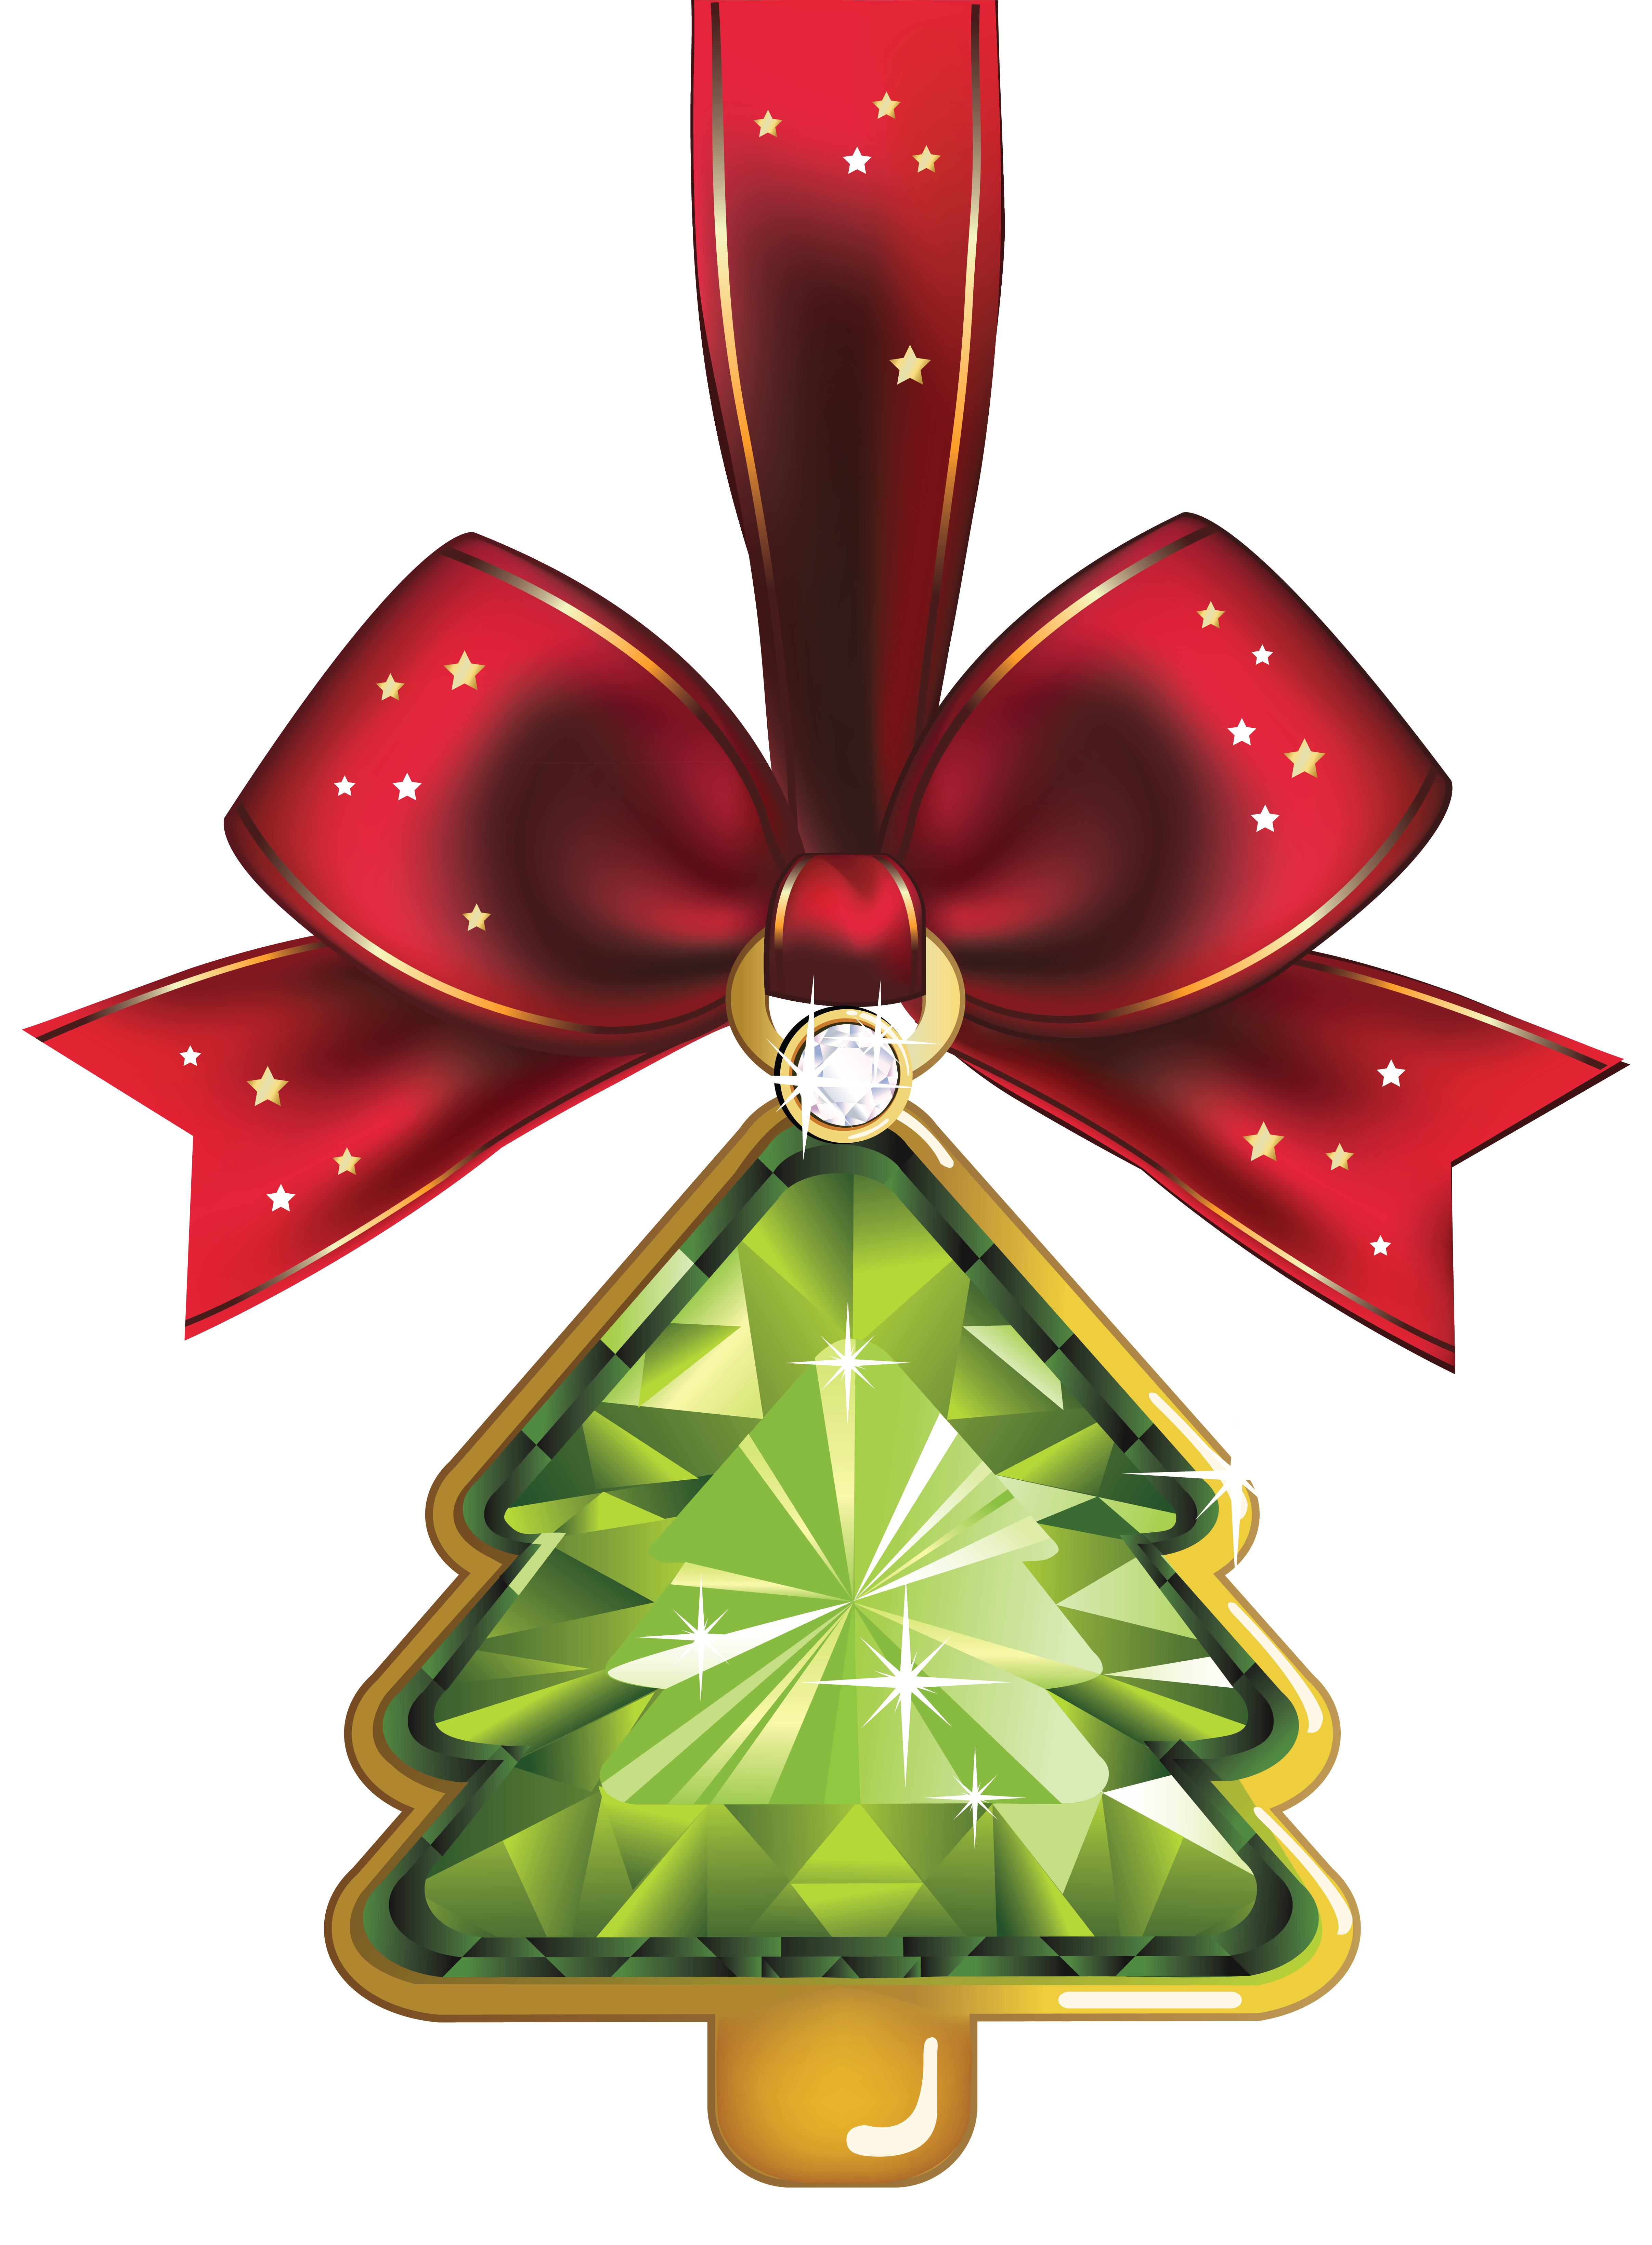 Tree ornaments clipart vector library library Christmas Crystal Tree Ornaments Clipart | Gallery Yopriceville ... vector library library